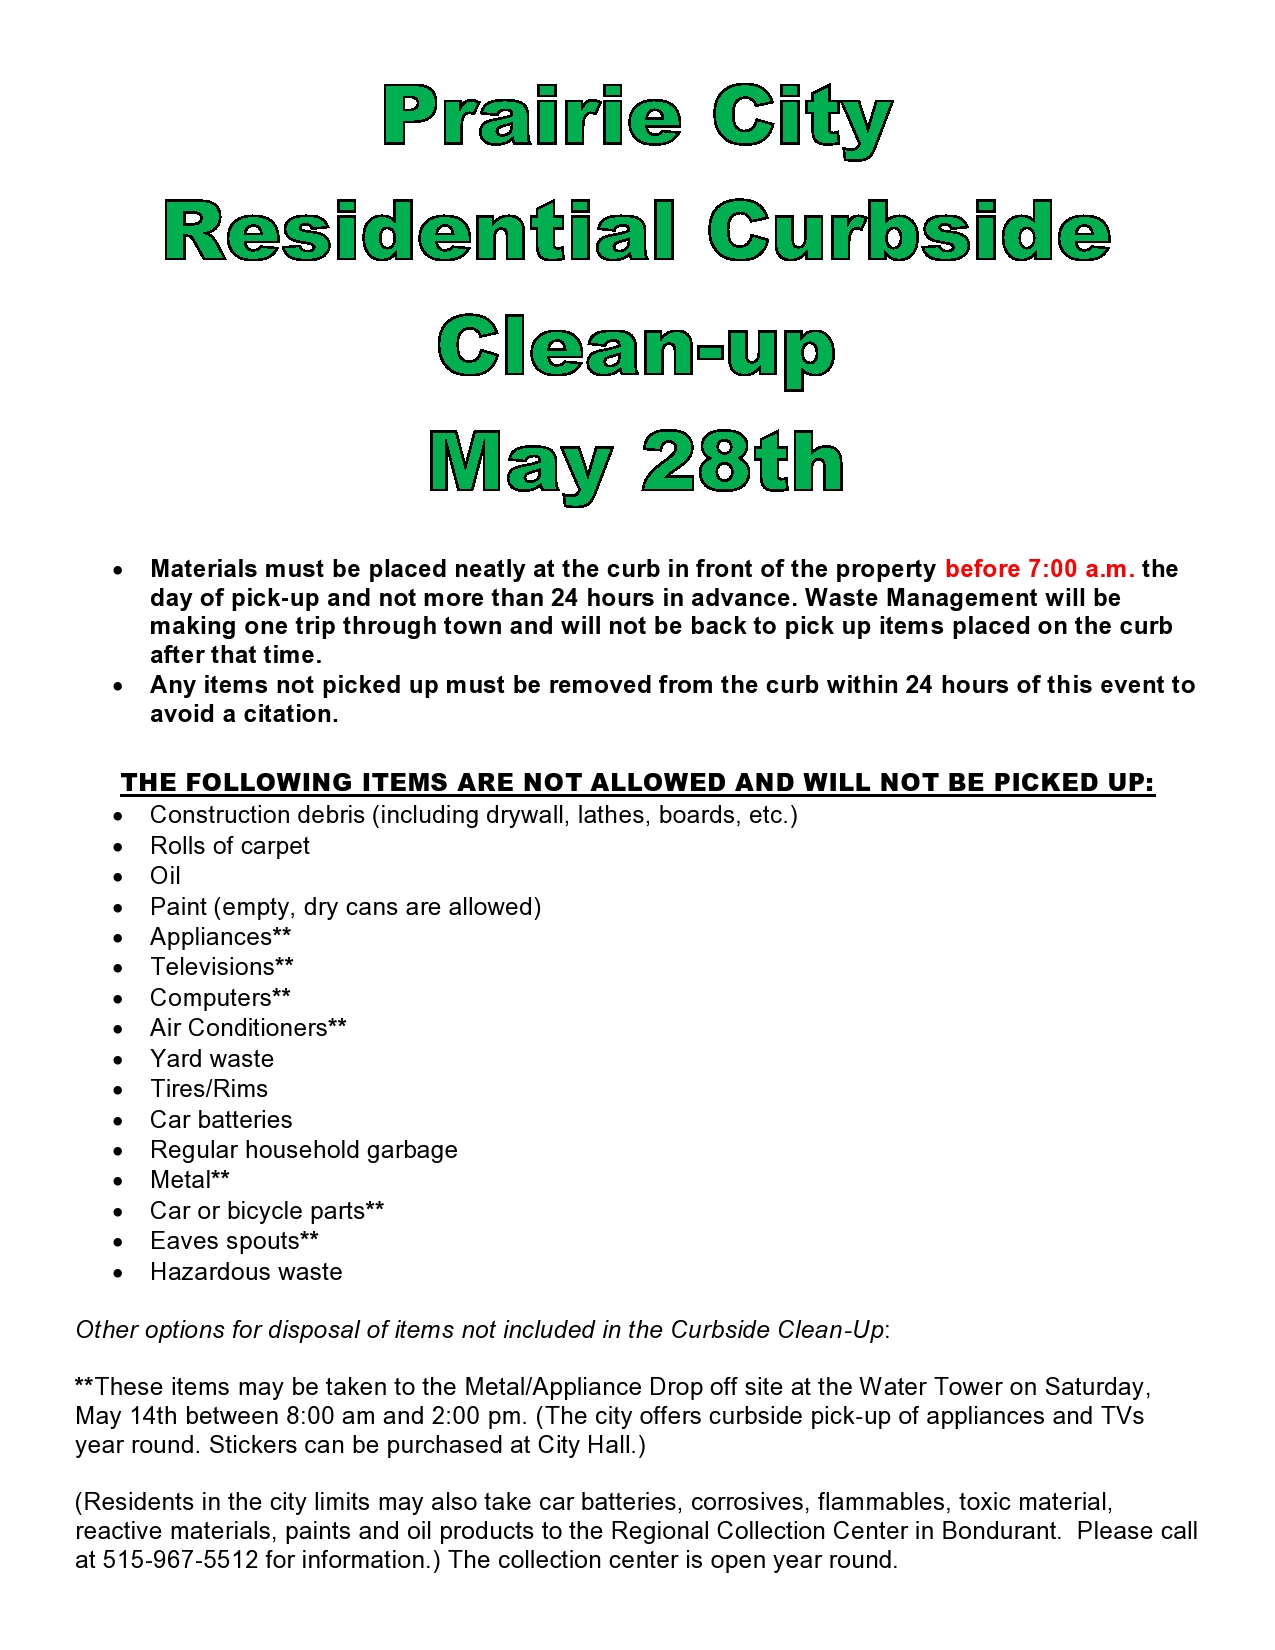 Curbside Clean-up Day